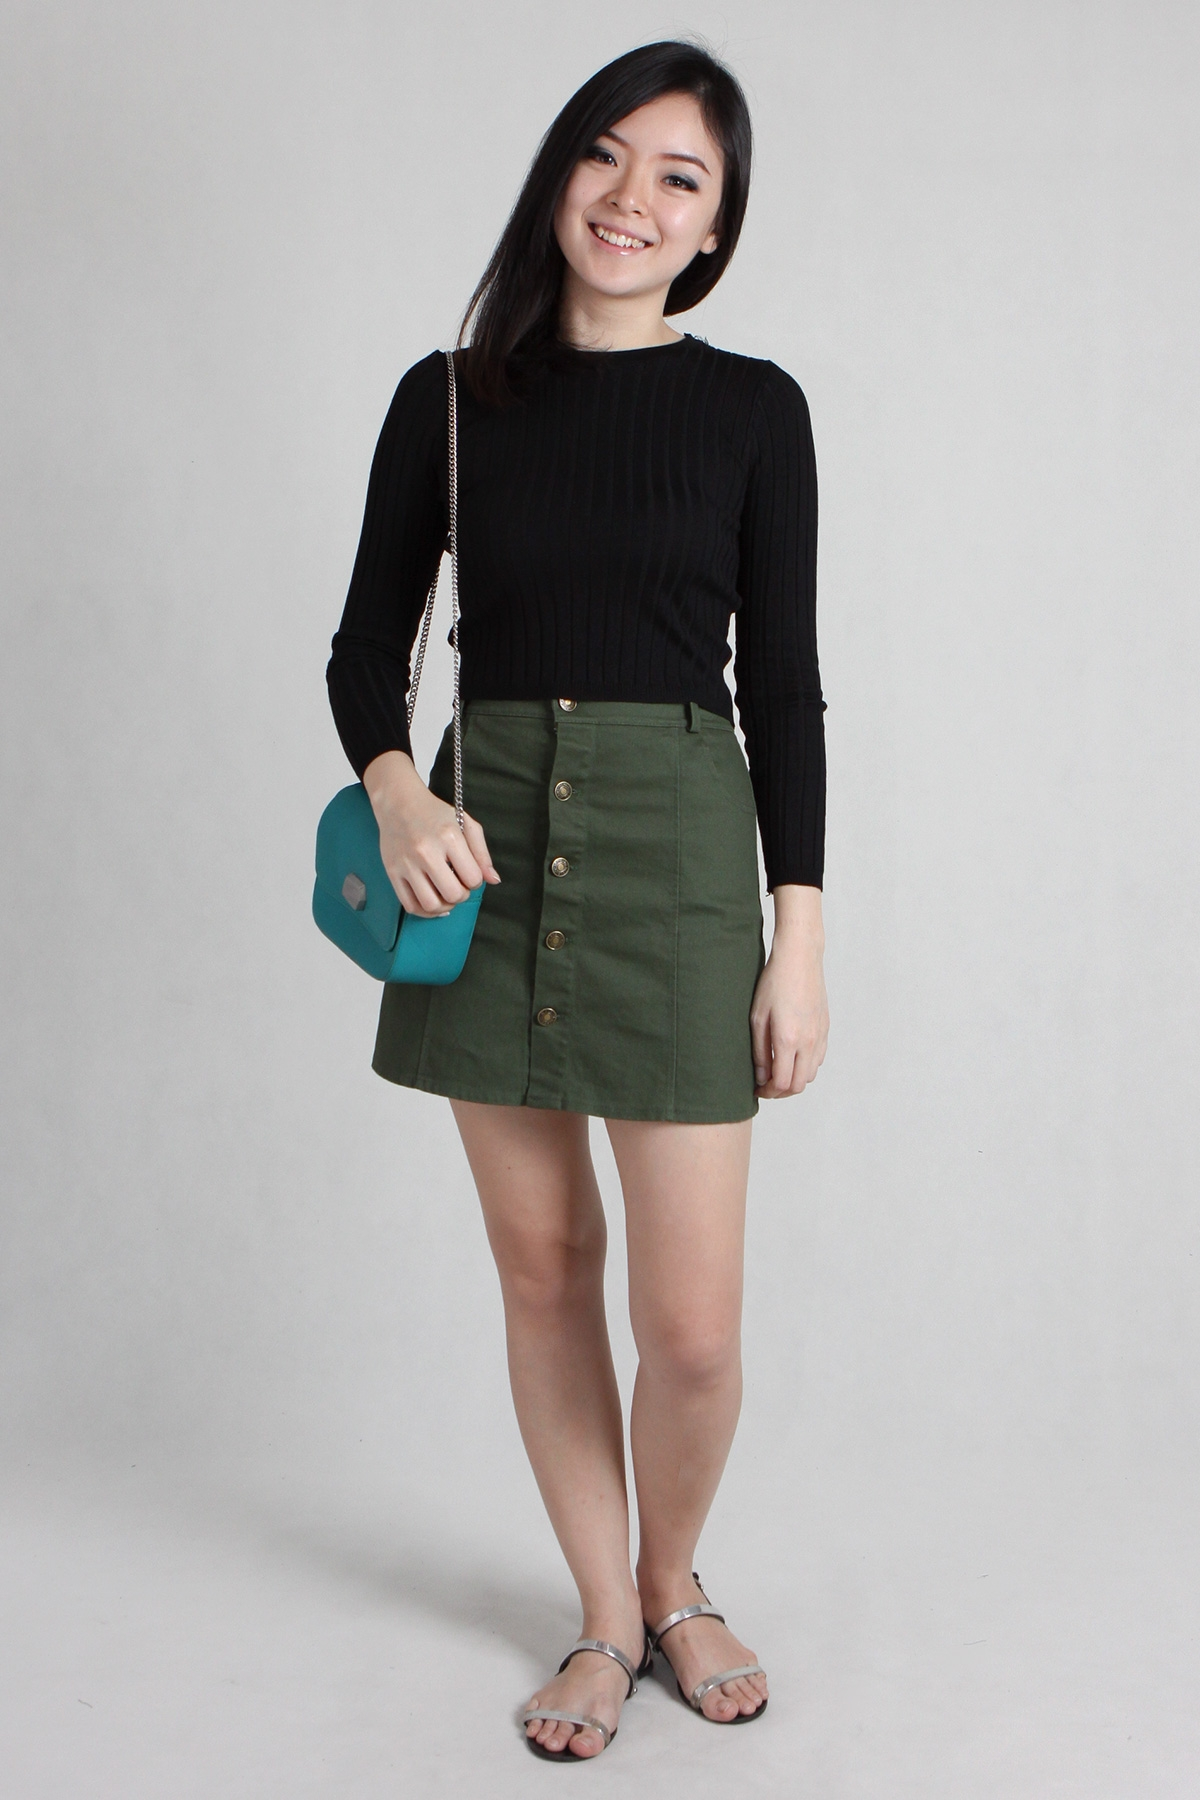 Button Denim Skirt in Khaki Green - PS Curate